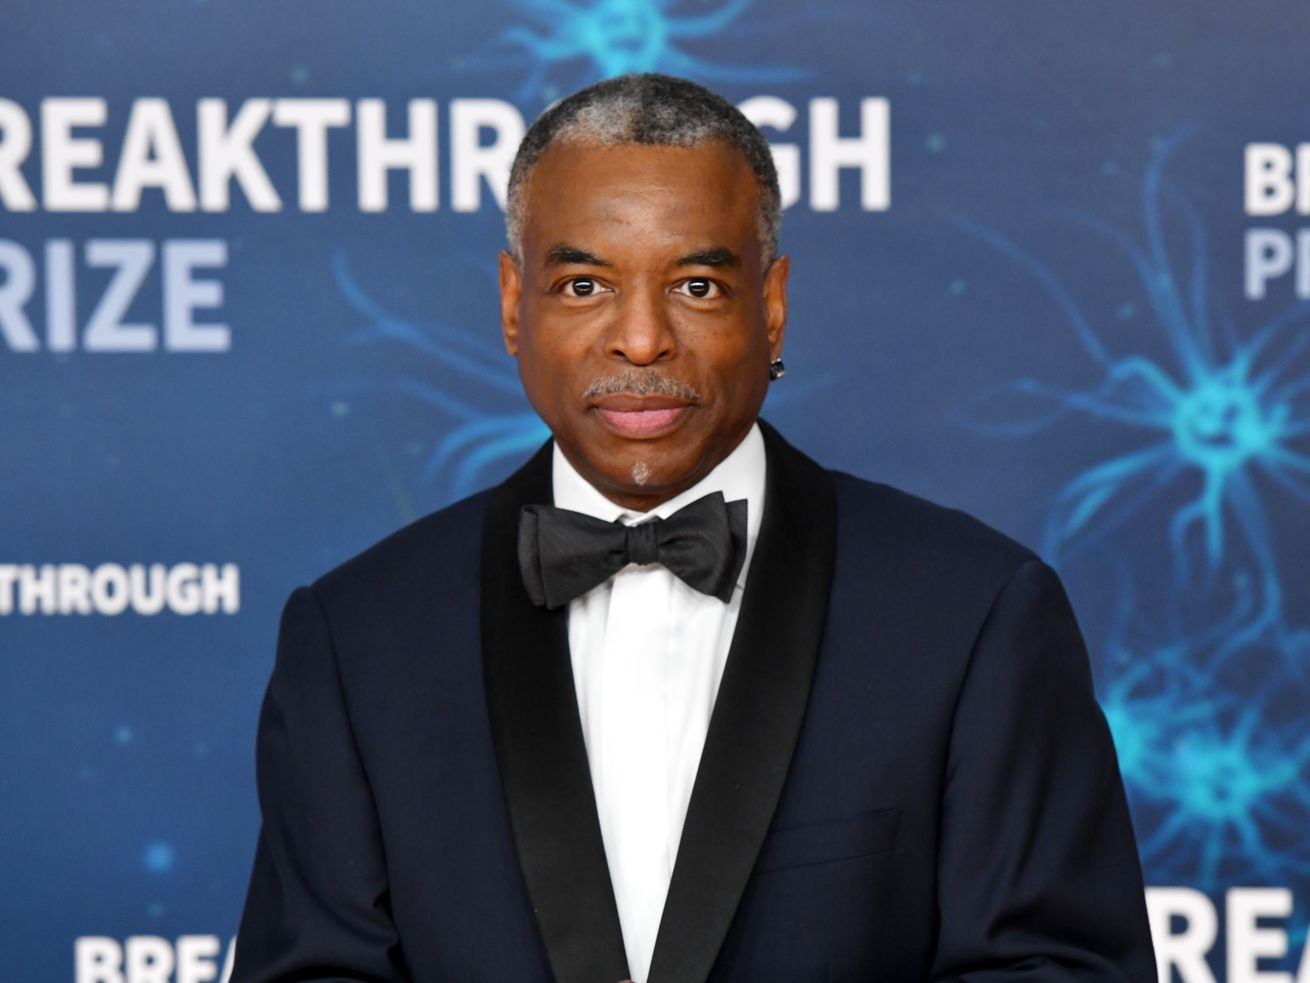 LeVar Burton attends the 2020 Breakthrough Prize at NASA Ames Research Center in 2019 in Mountain View, California.